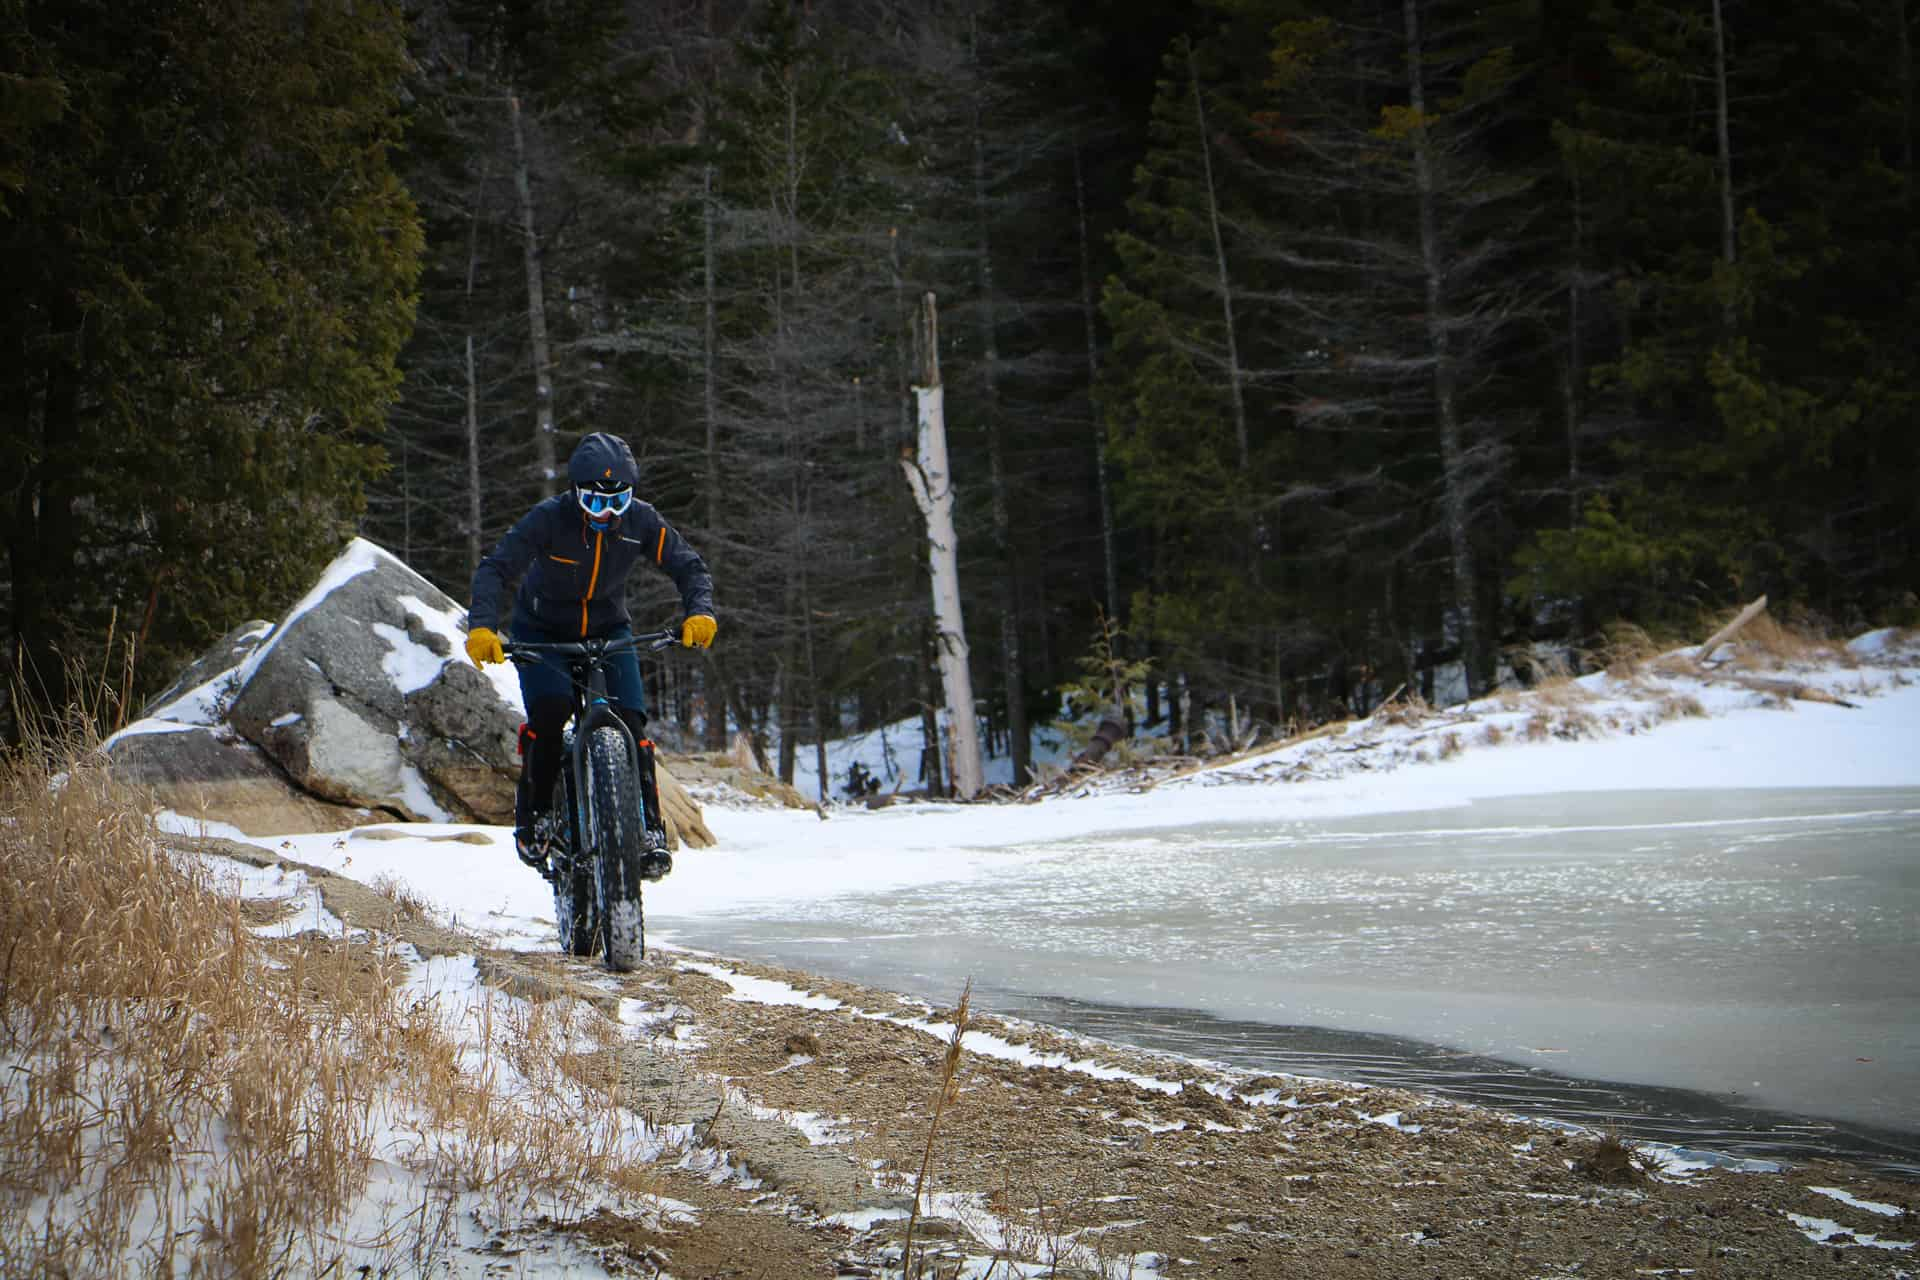 Lady on fatbike going up icy road